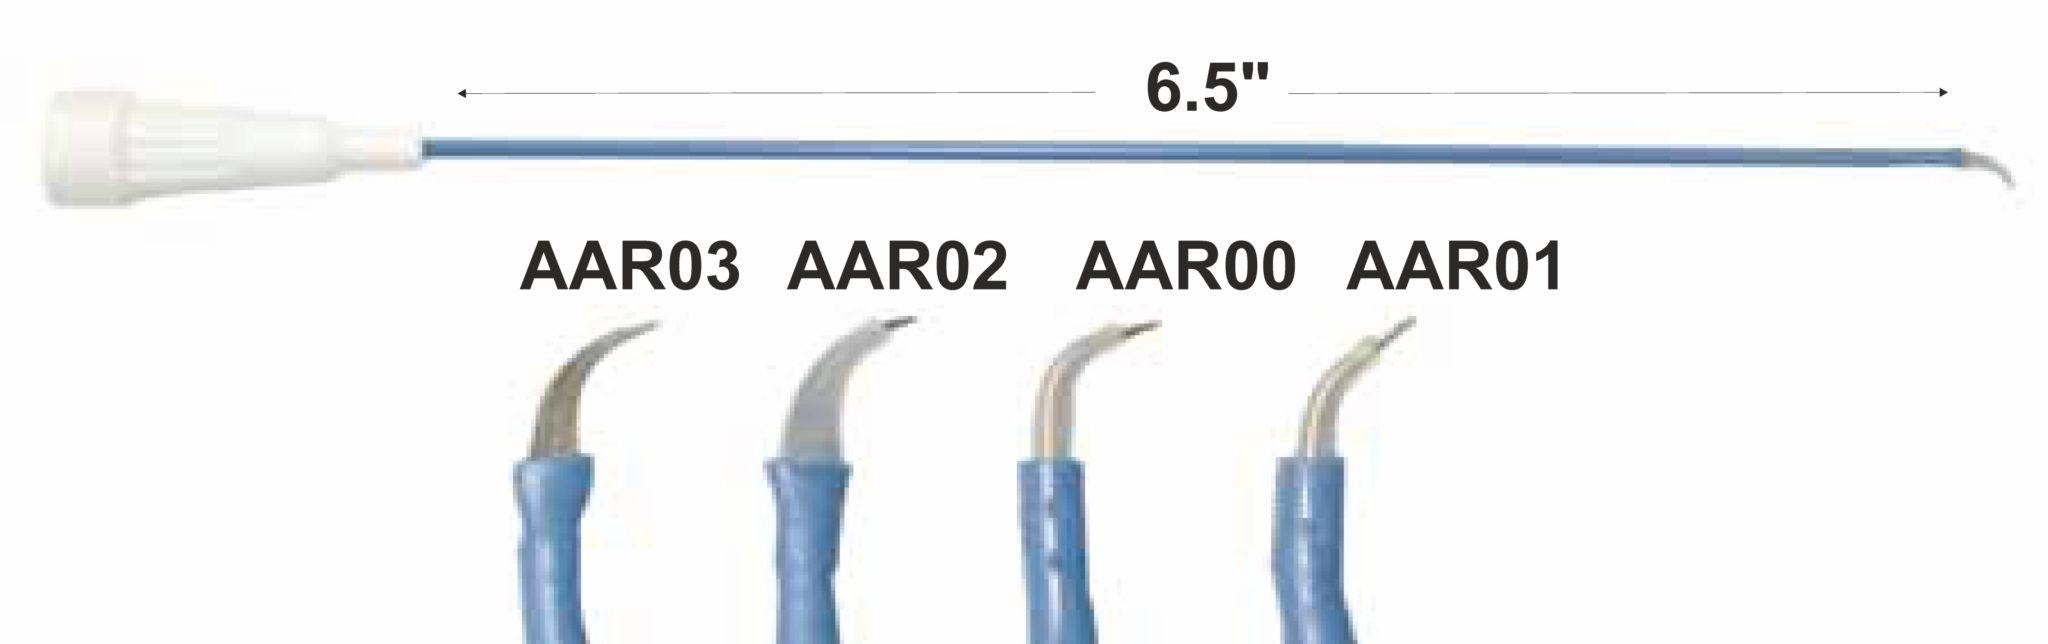 Arthroscopic electrodes